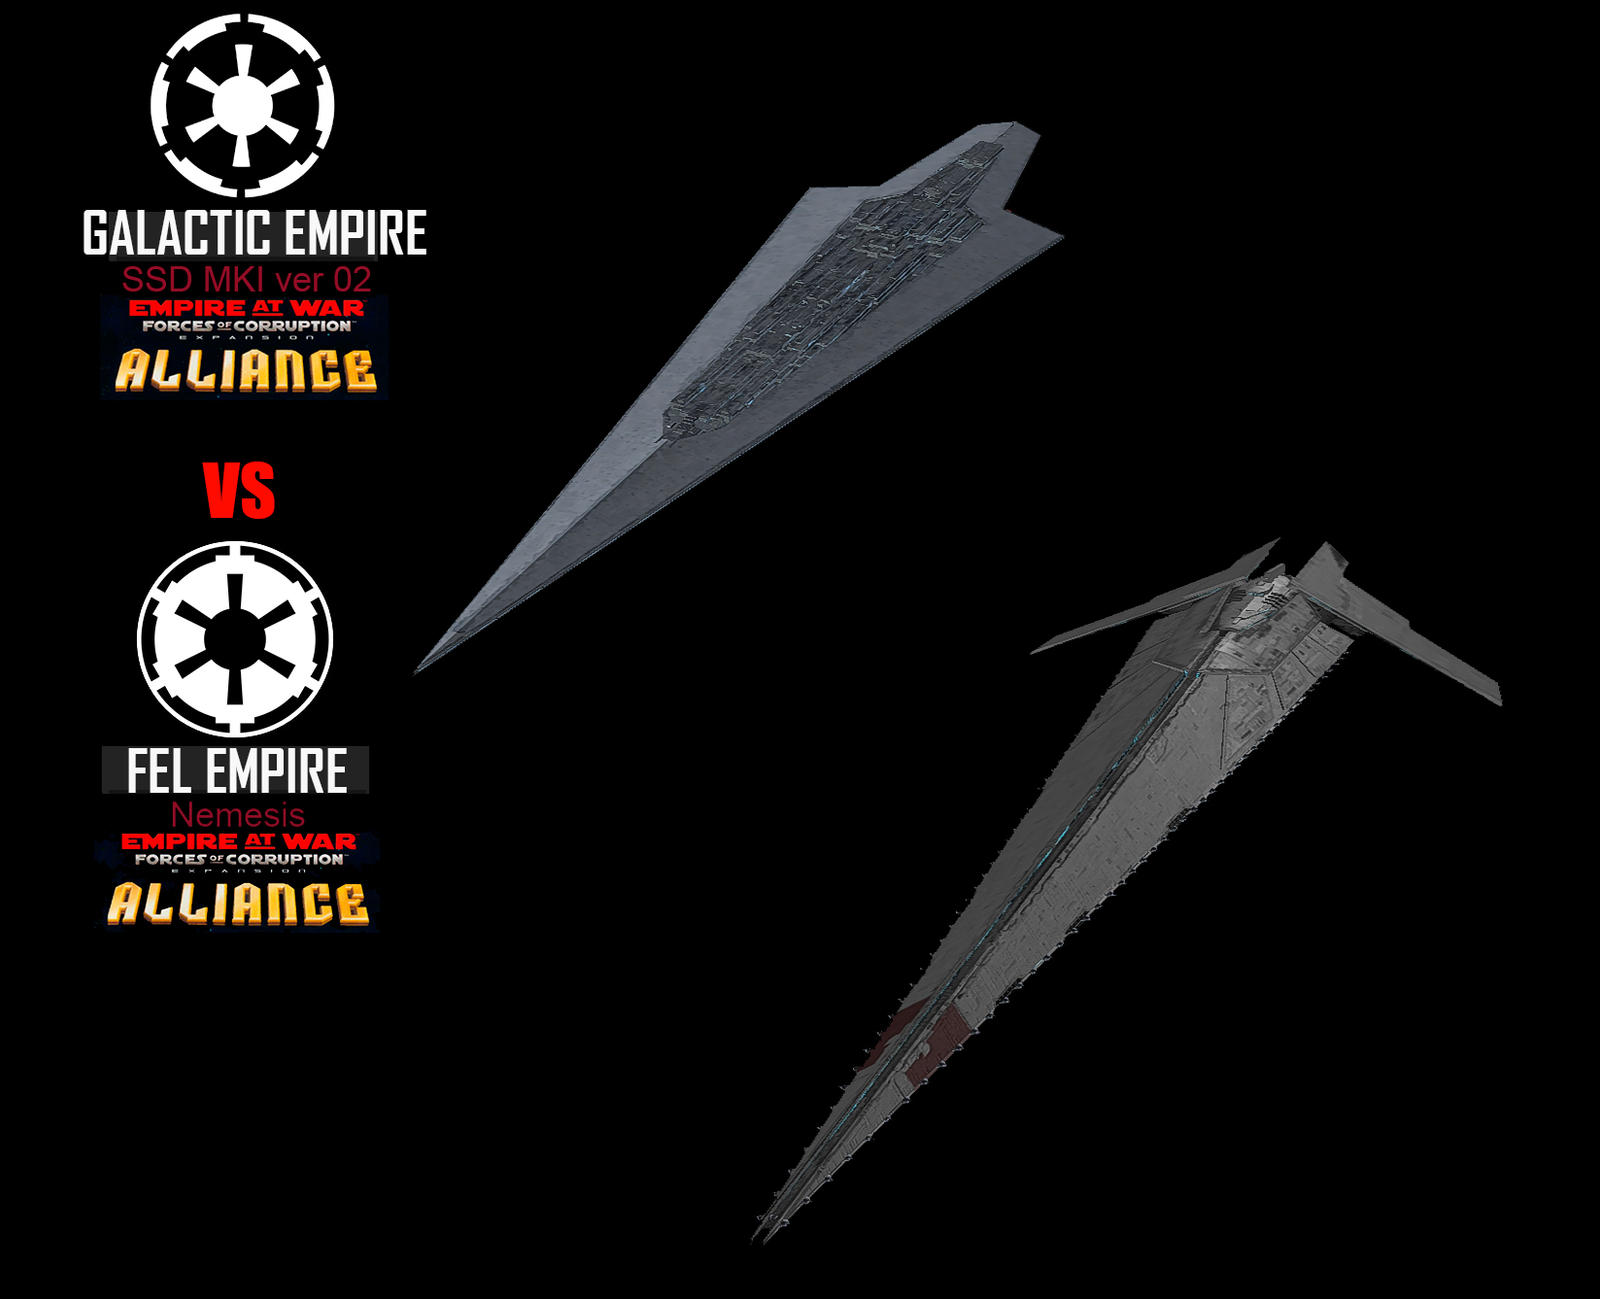 Star Wars Empire at War – FOC Alliance – SSD MKI vs Nemesis